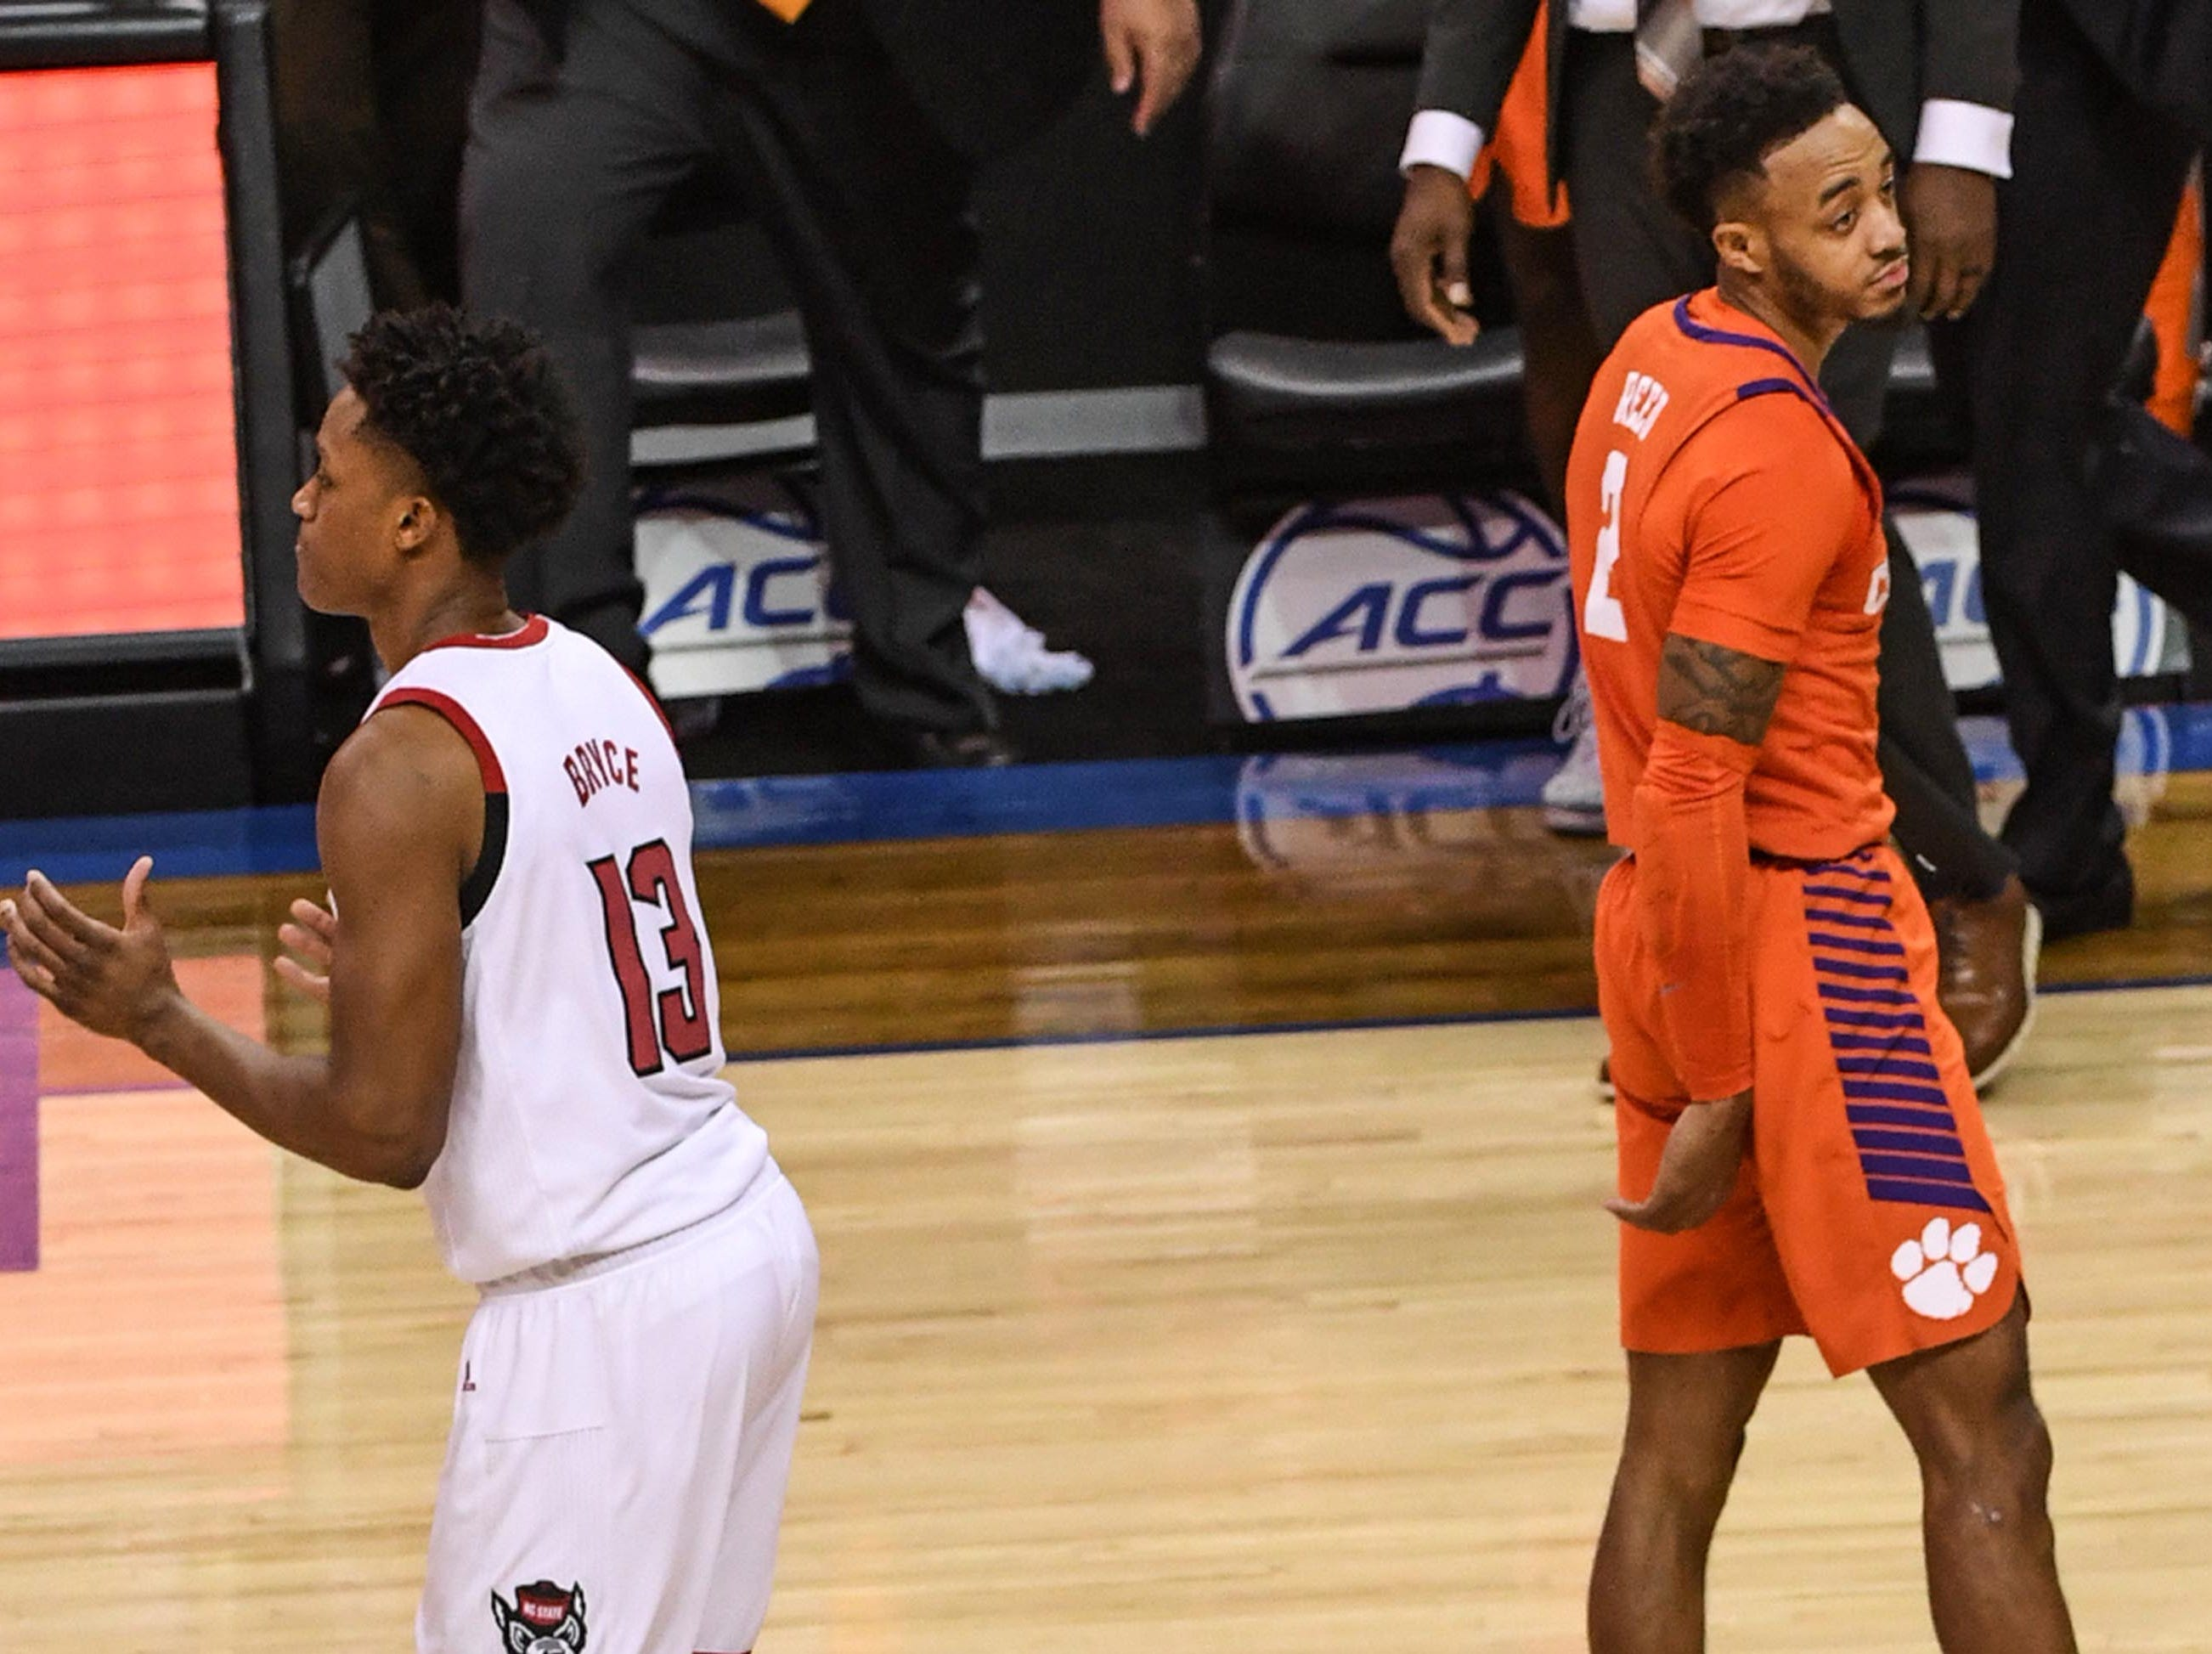 Clemson guard Marcquise Reed (2) and N.C. State guard C.J. Bryce(13) walk off the court after the game at the Spectrum Center in Charlotte, N.C. Tuesday, March 12, 2019. N.C. State won 59-58.